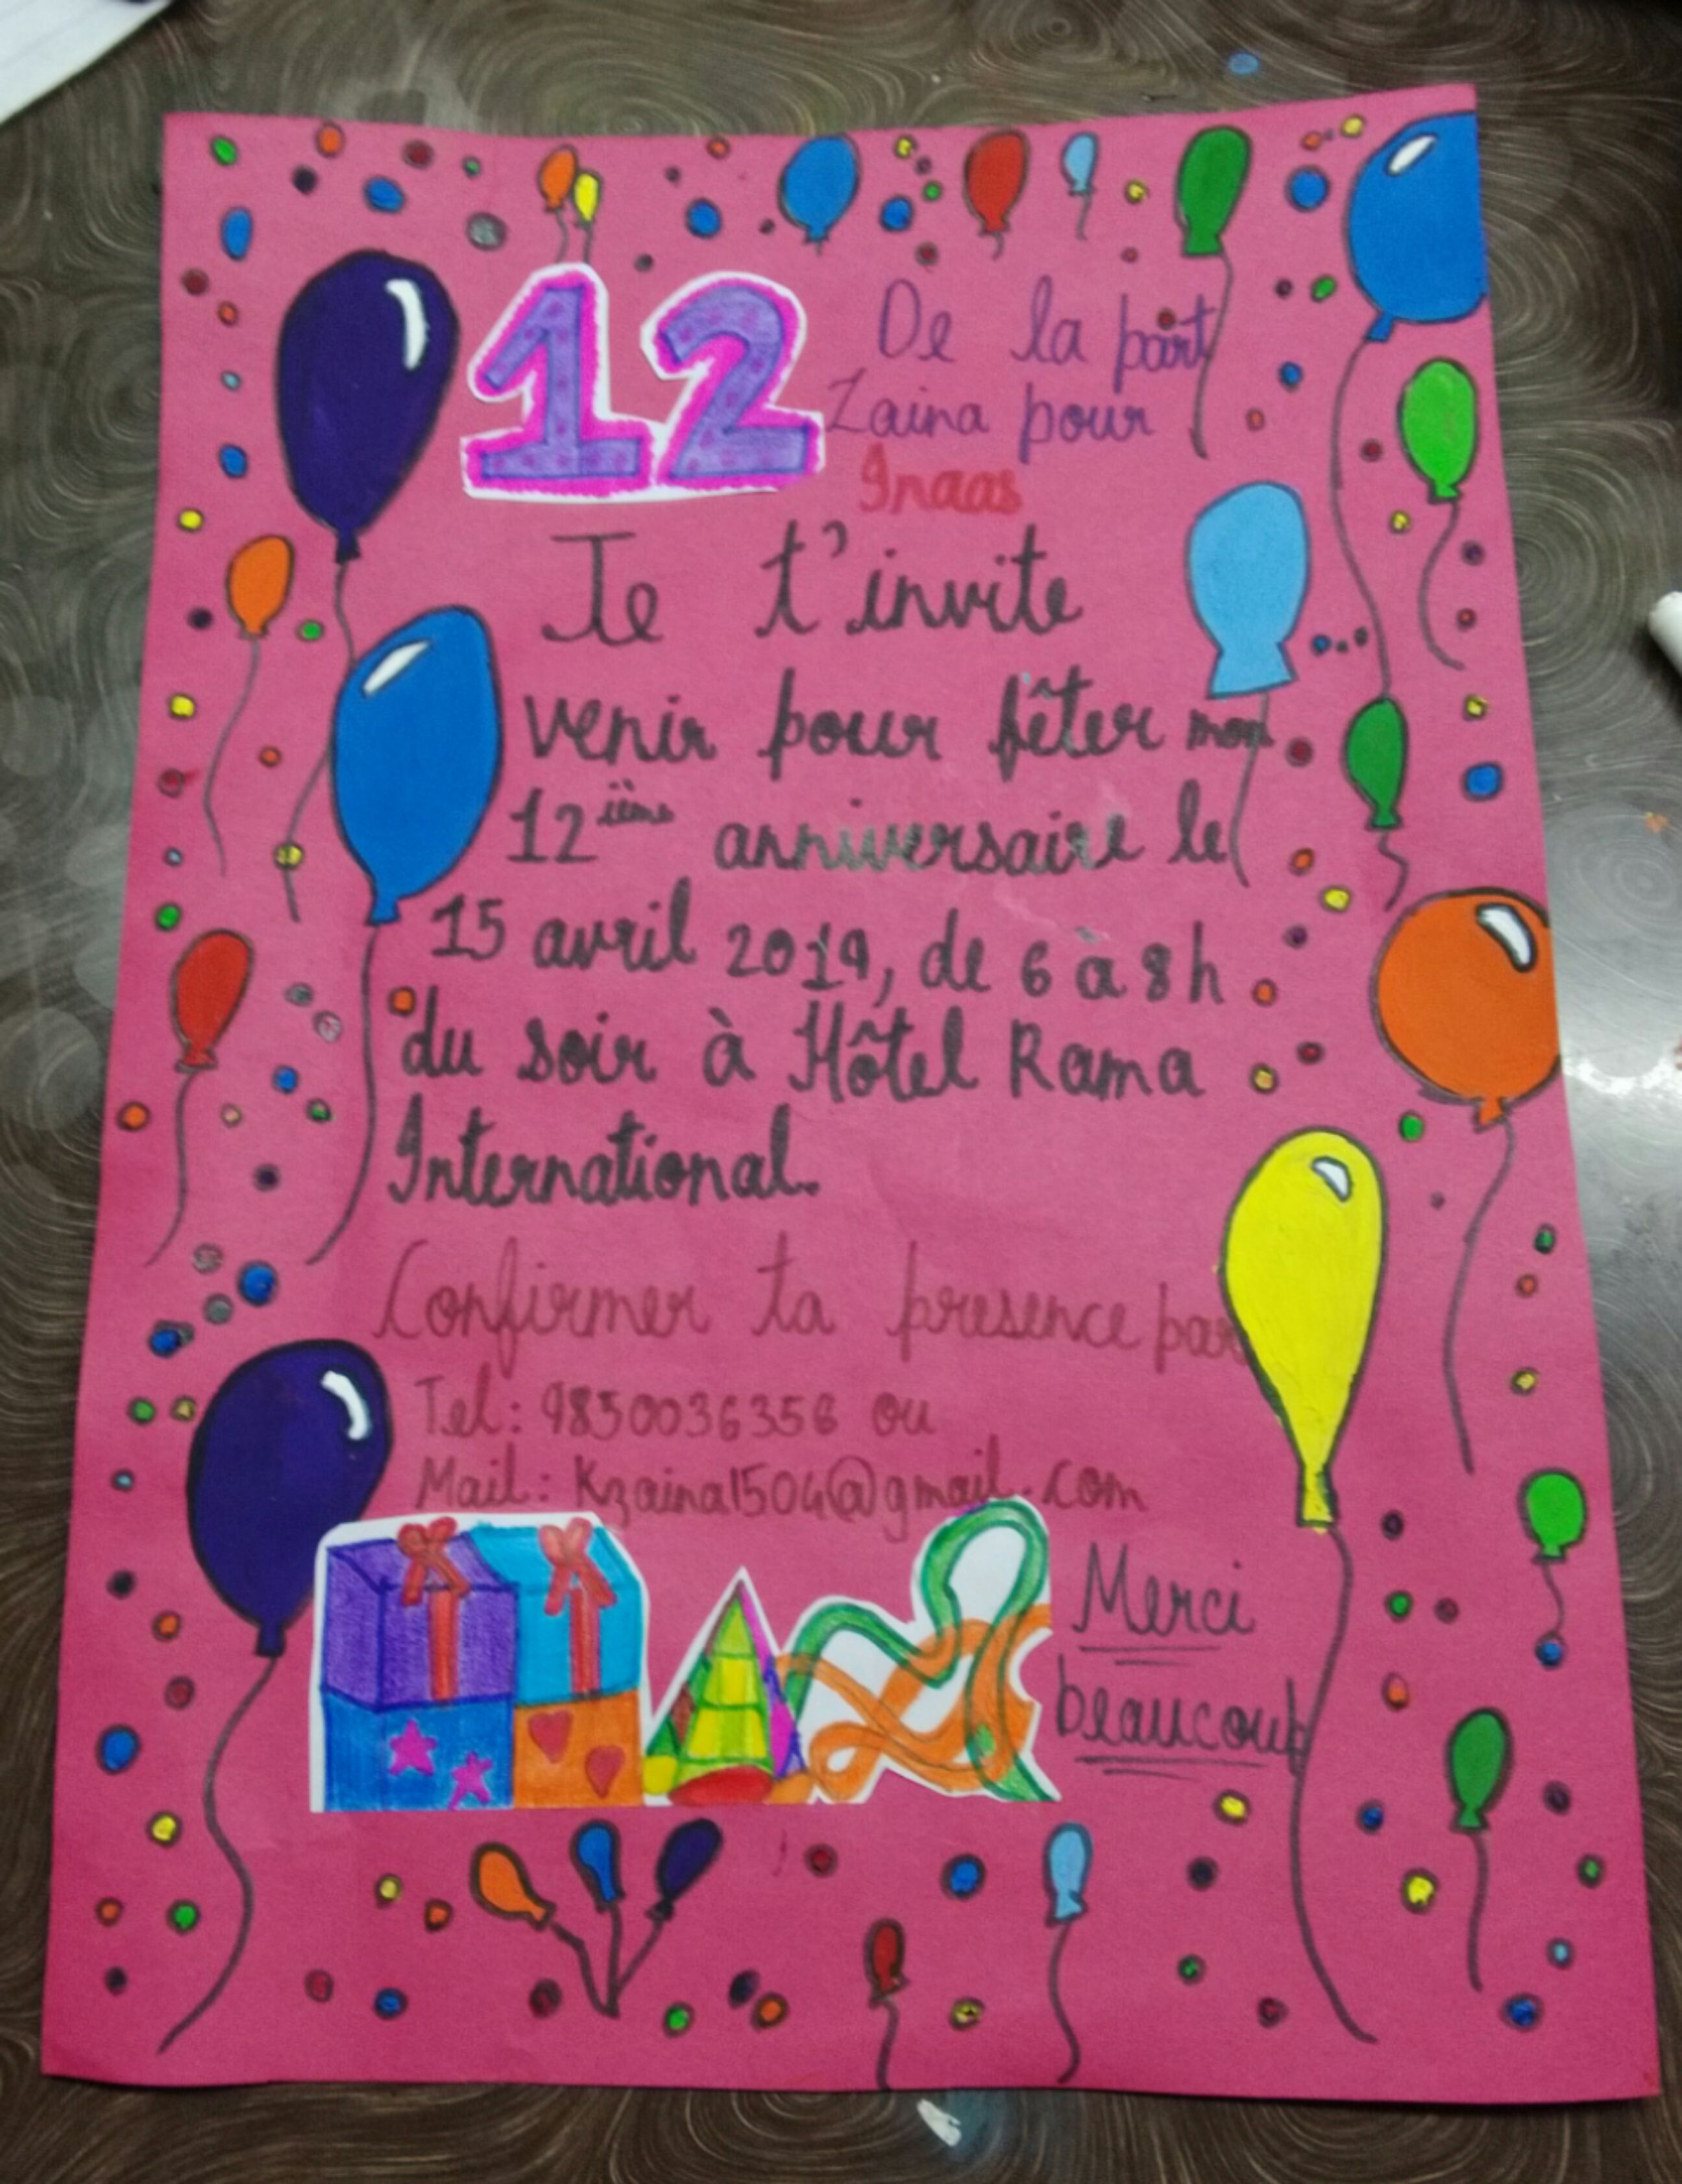 This Is An Example For An Invitation Card In French